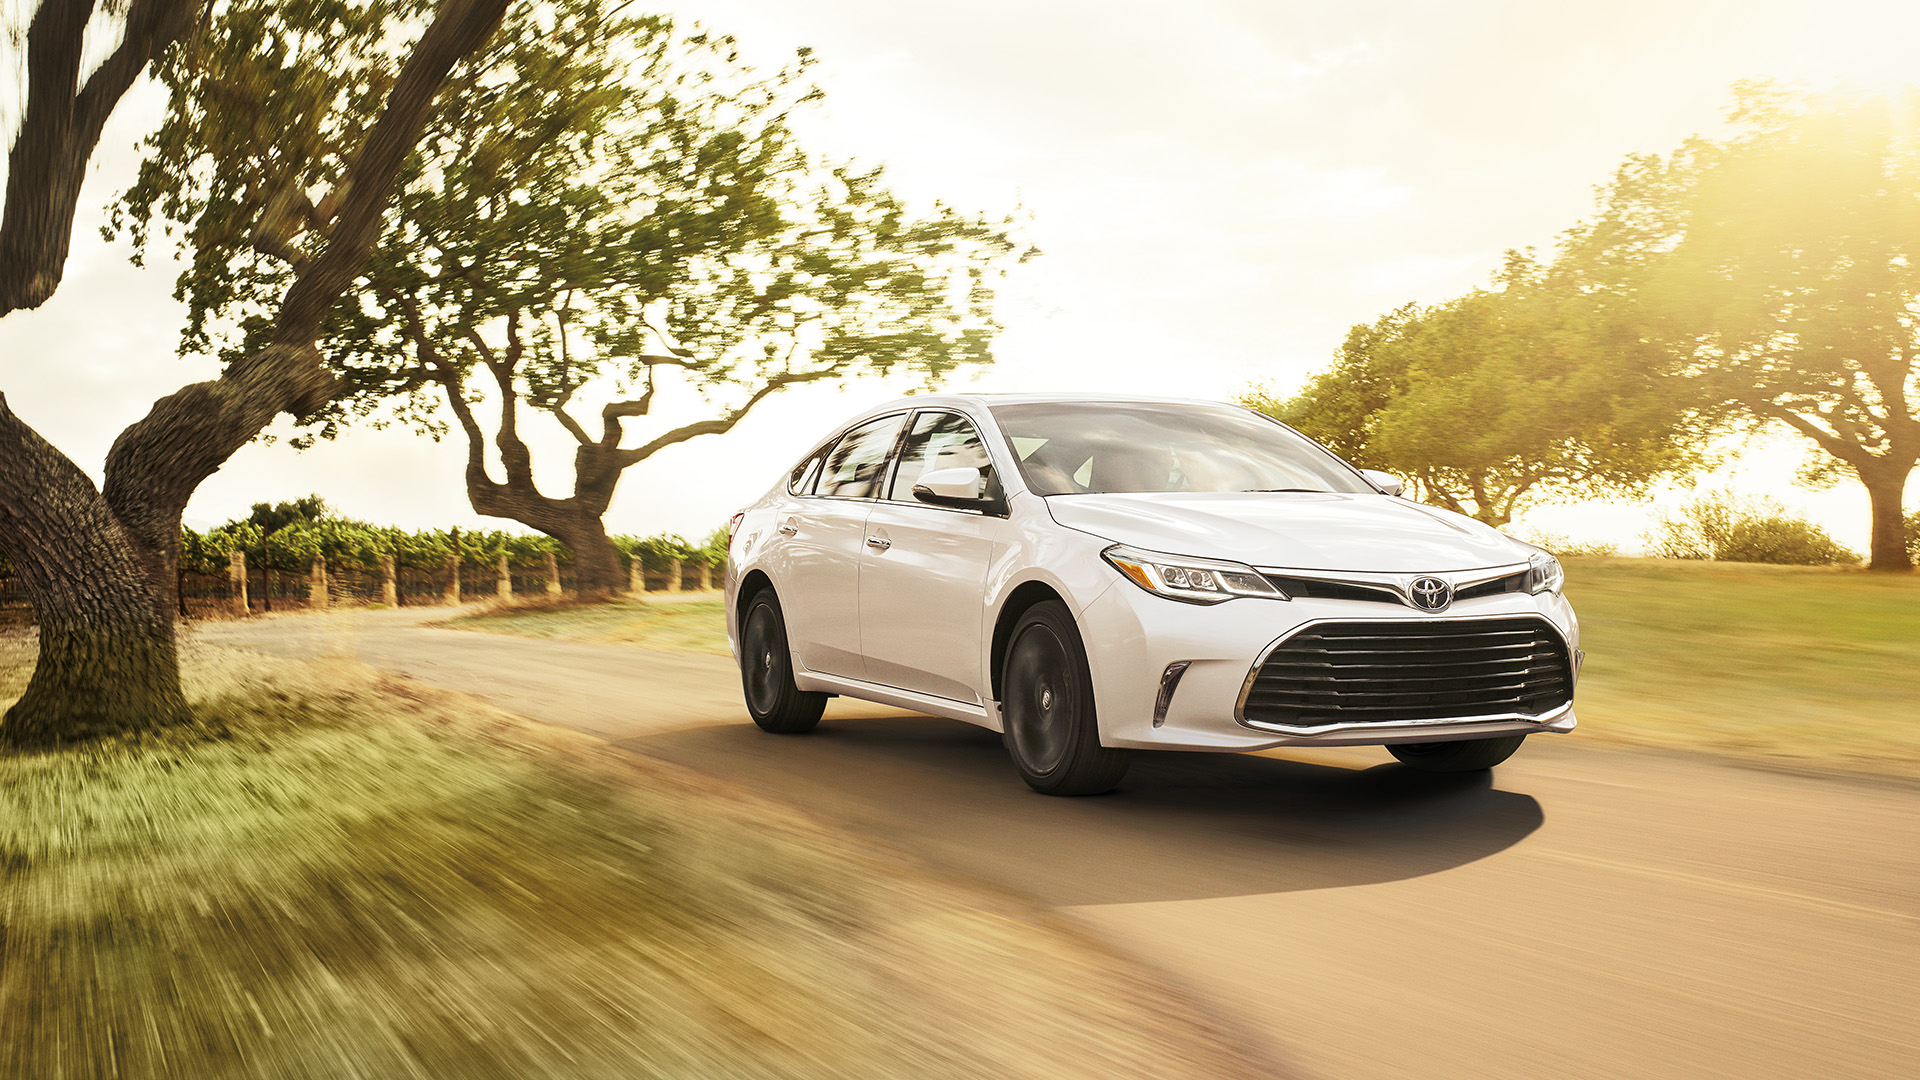 Car Lineup Wallpaper 2017 Toyota Avalon Overview The News Wheel